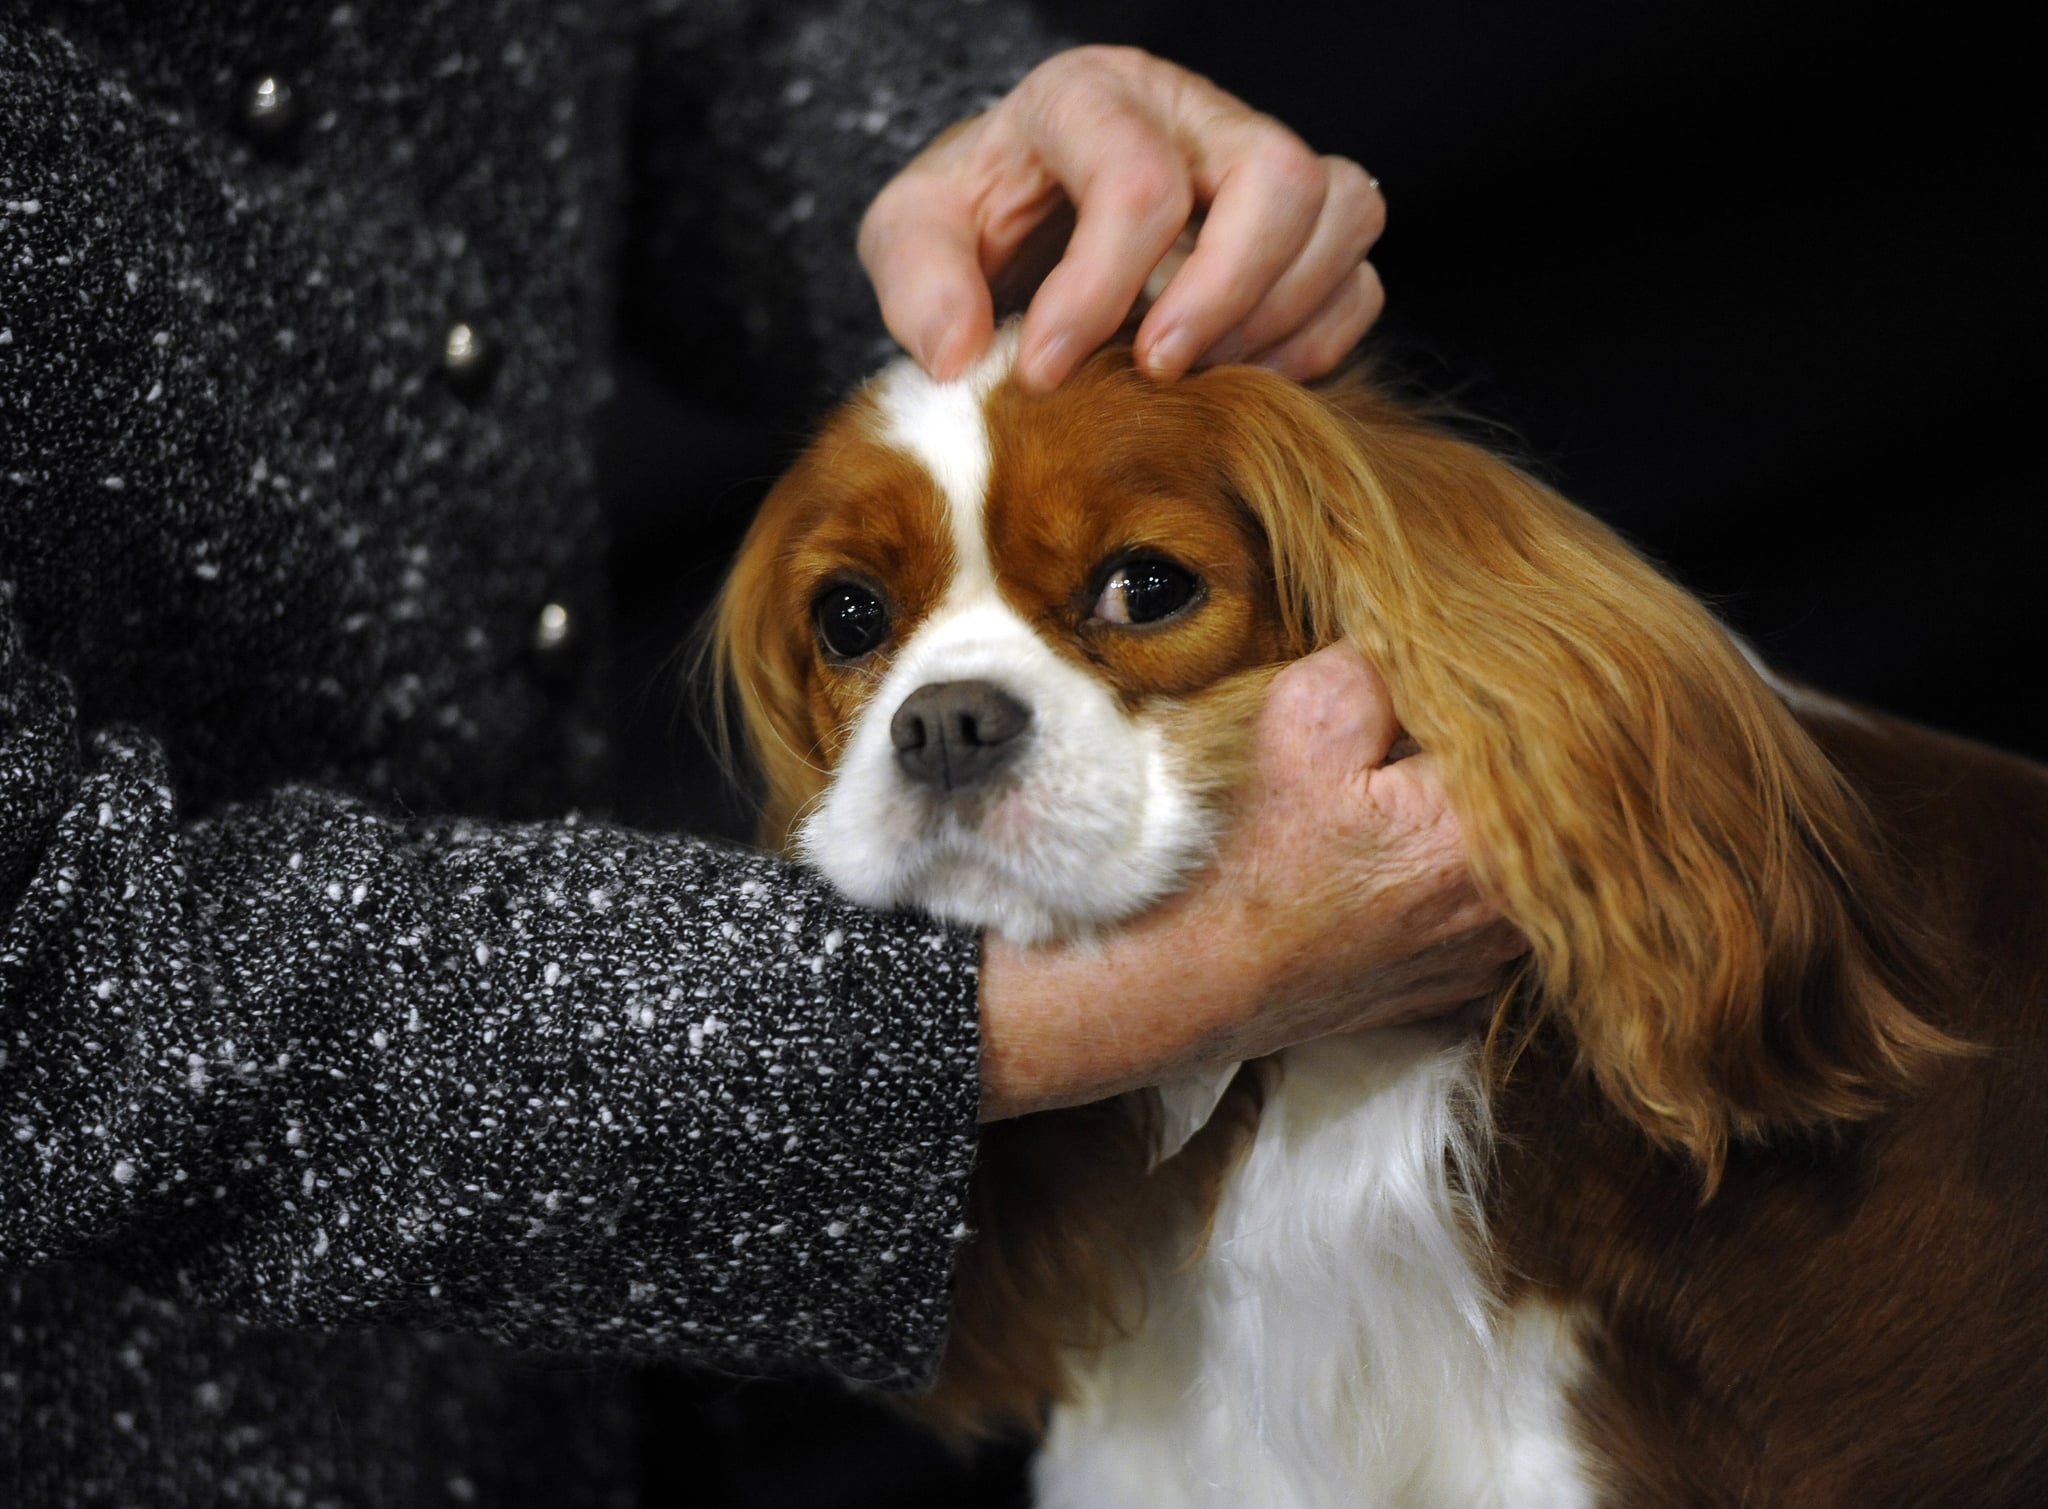 A quiet moment for a Cavalier King Charles Spaniel.